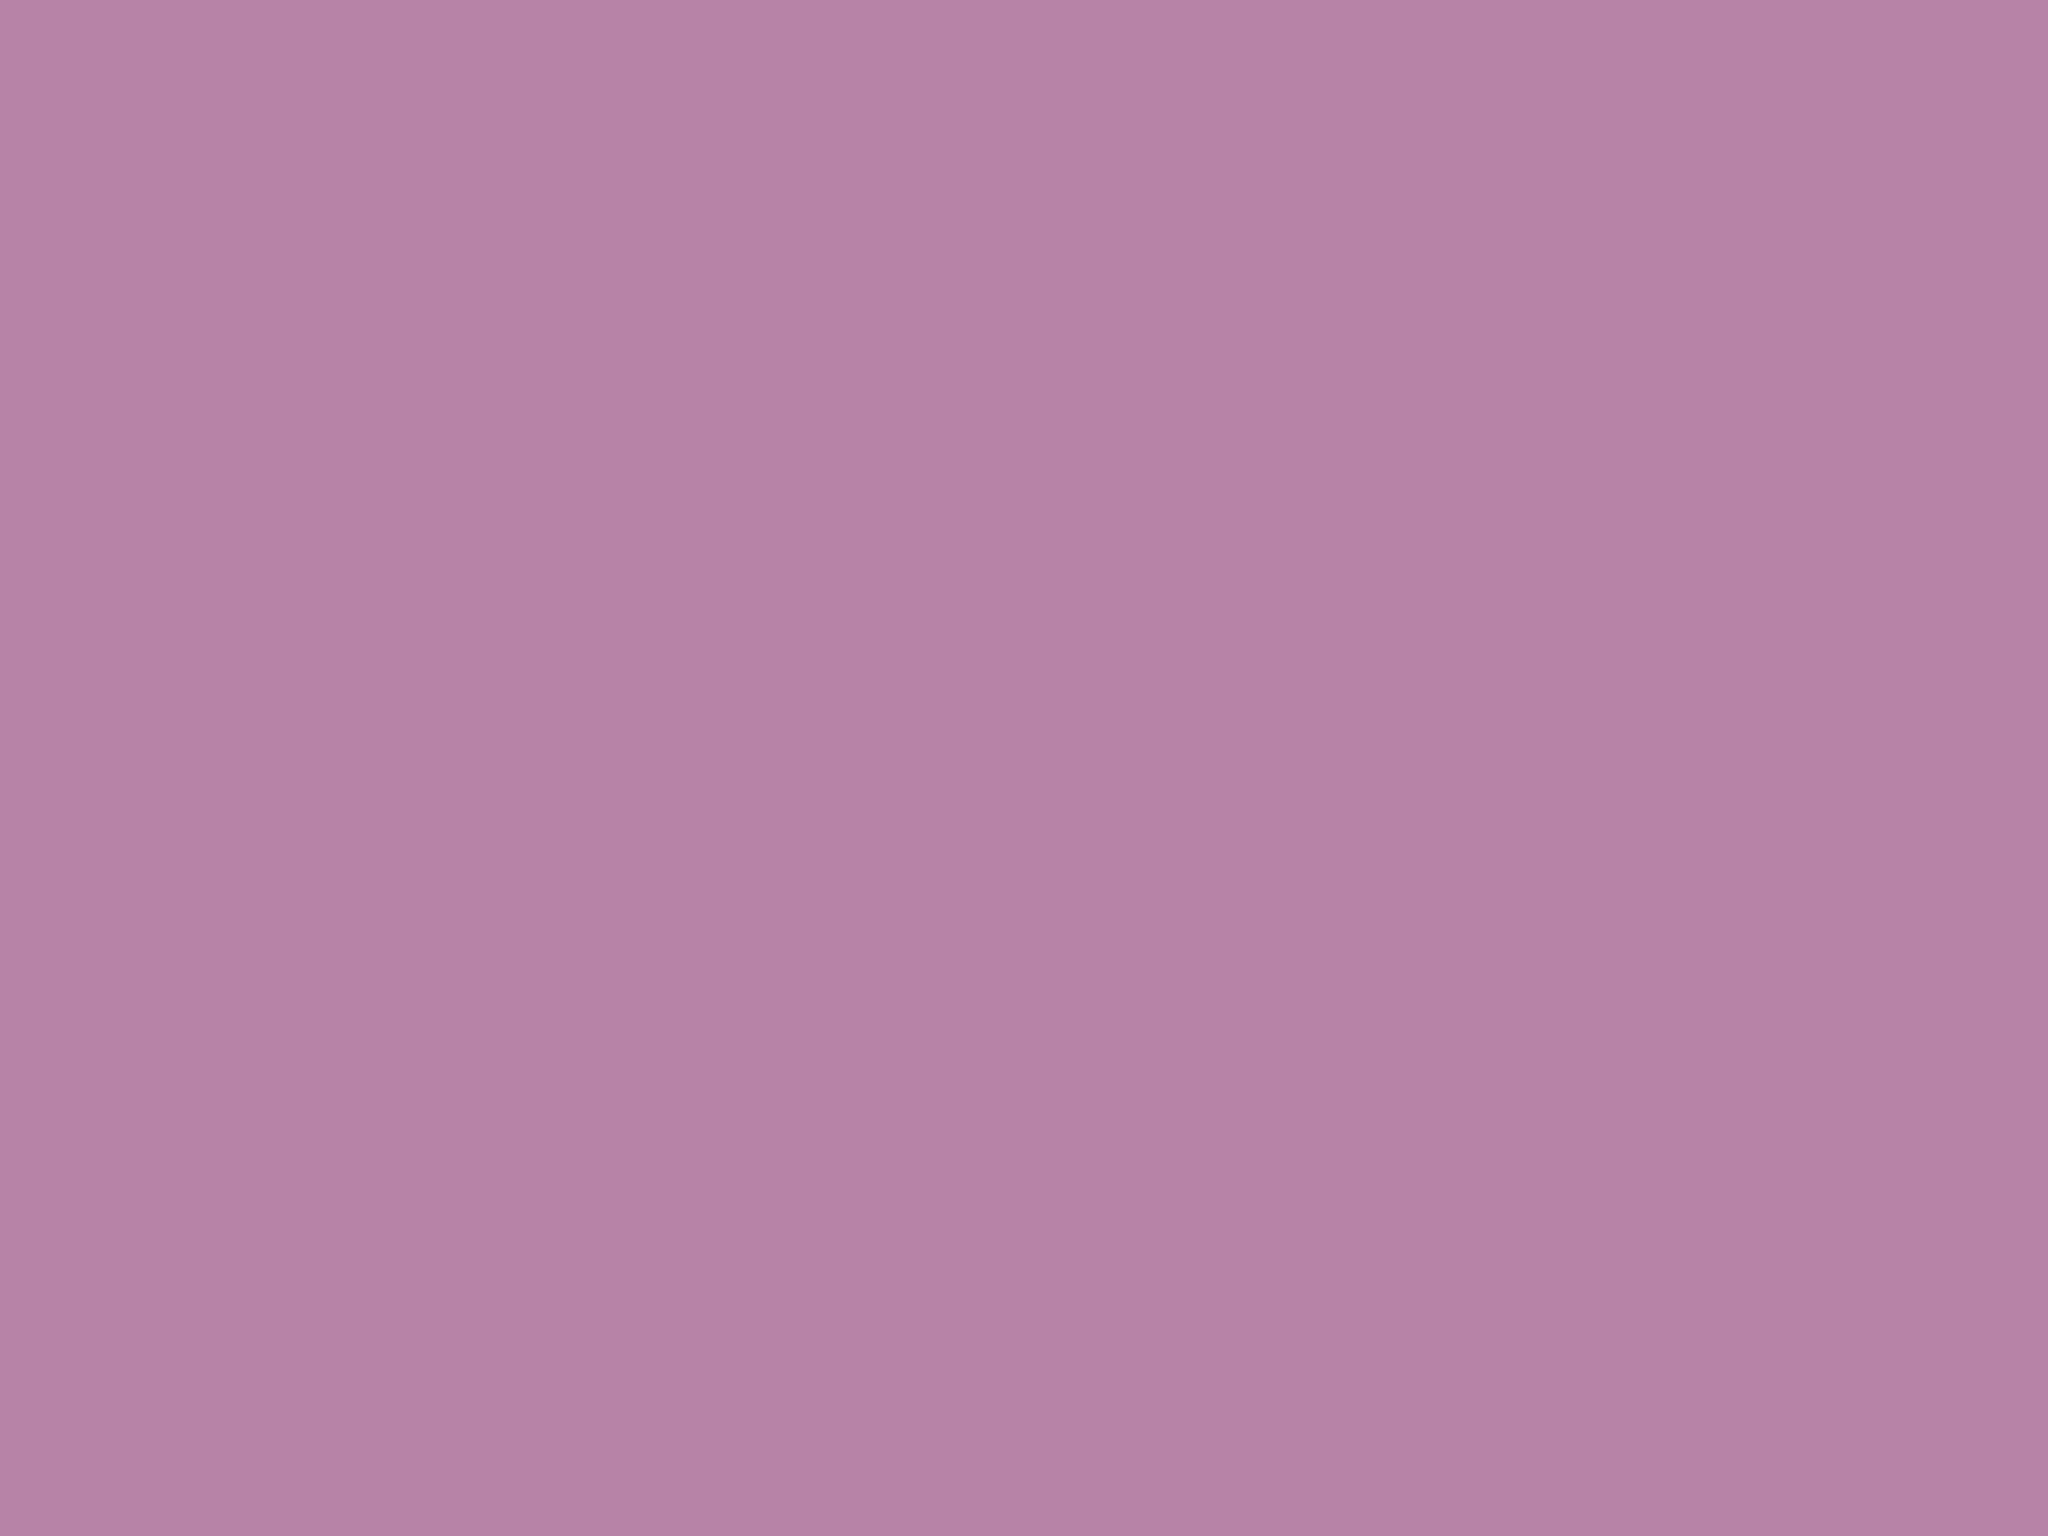 2048x1536 Opera Mauve Solid Color Background